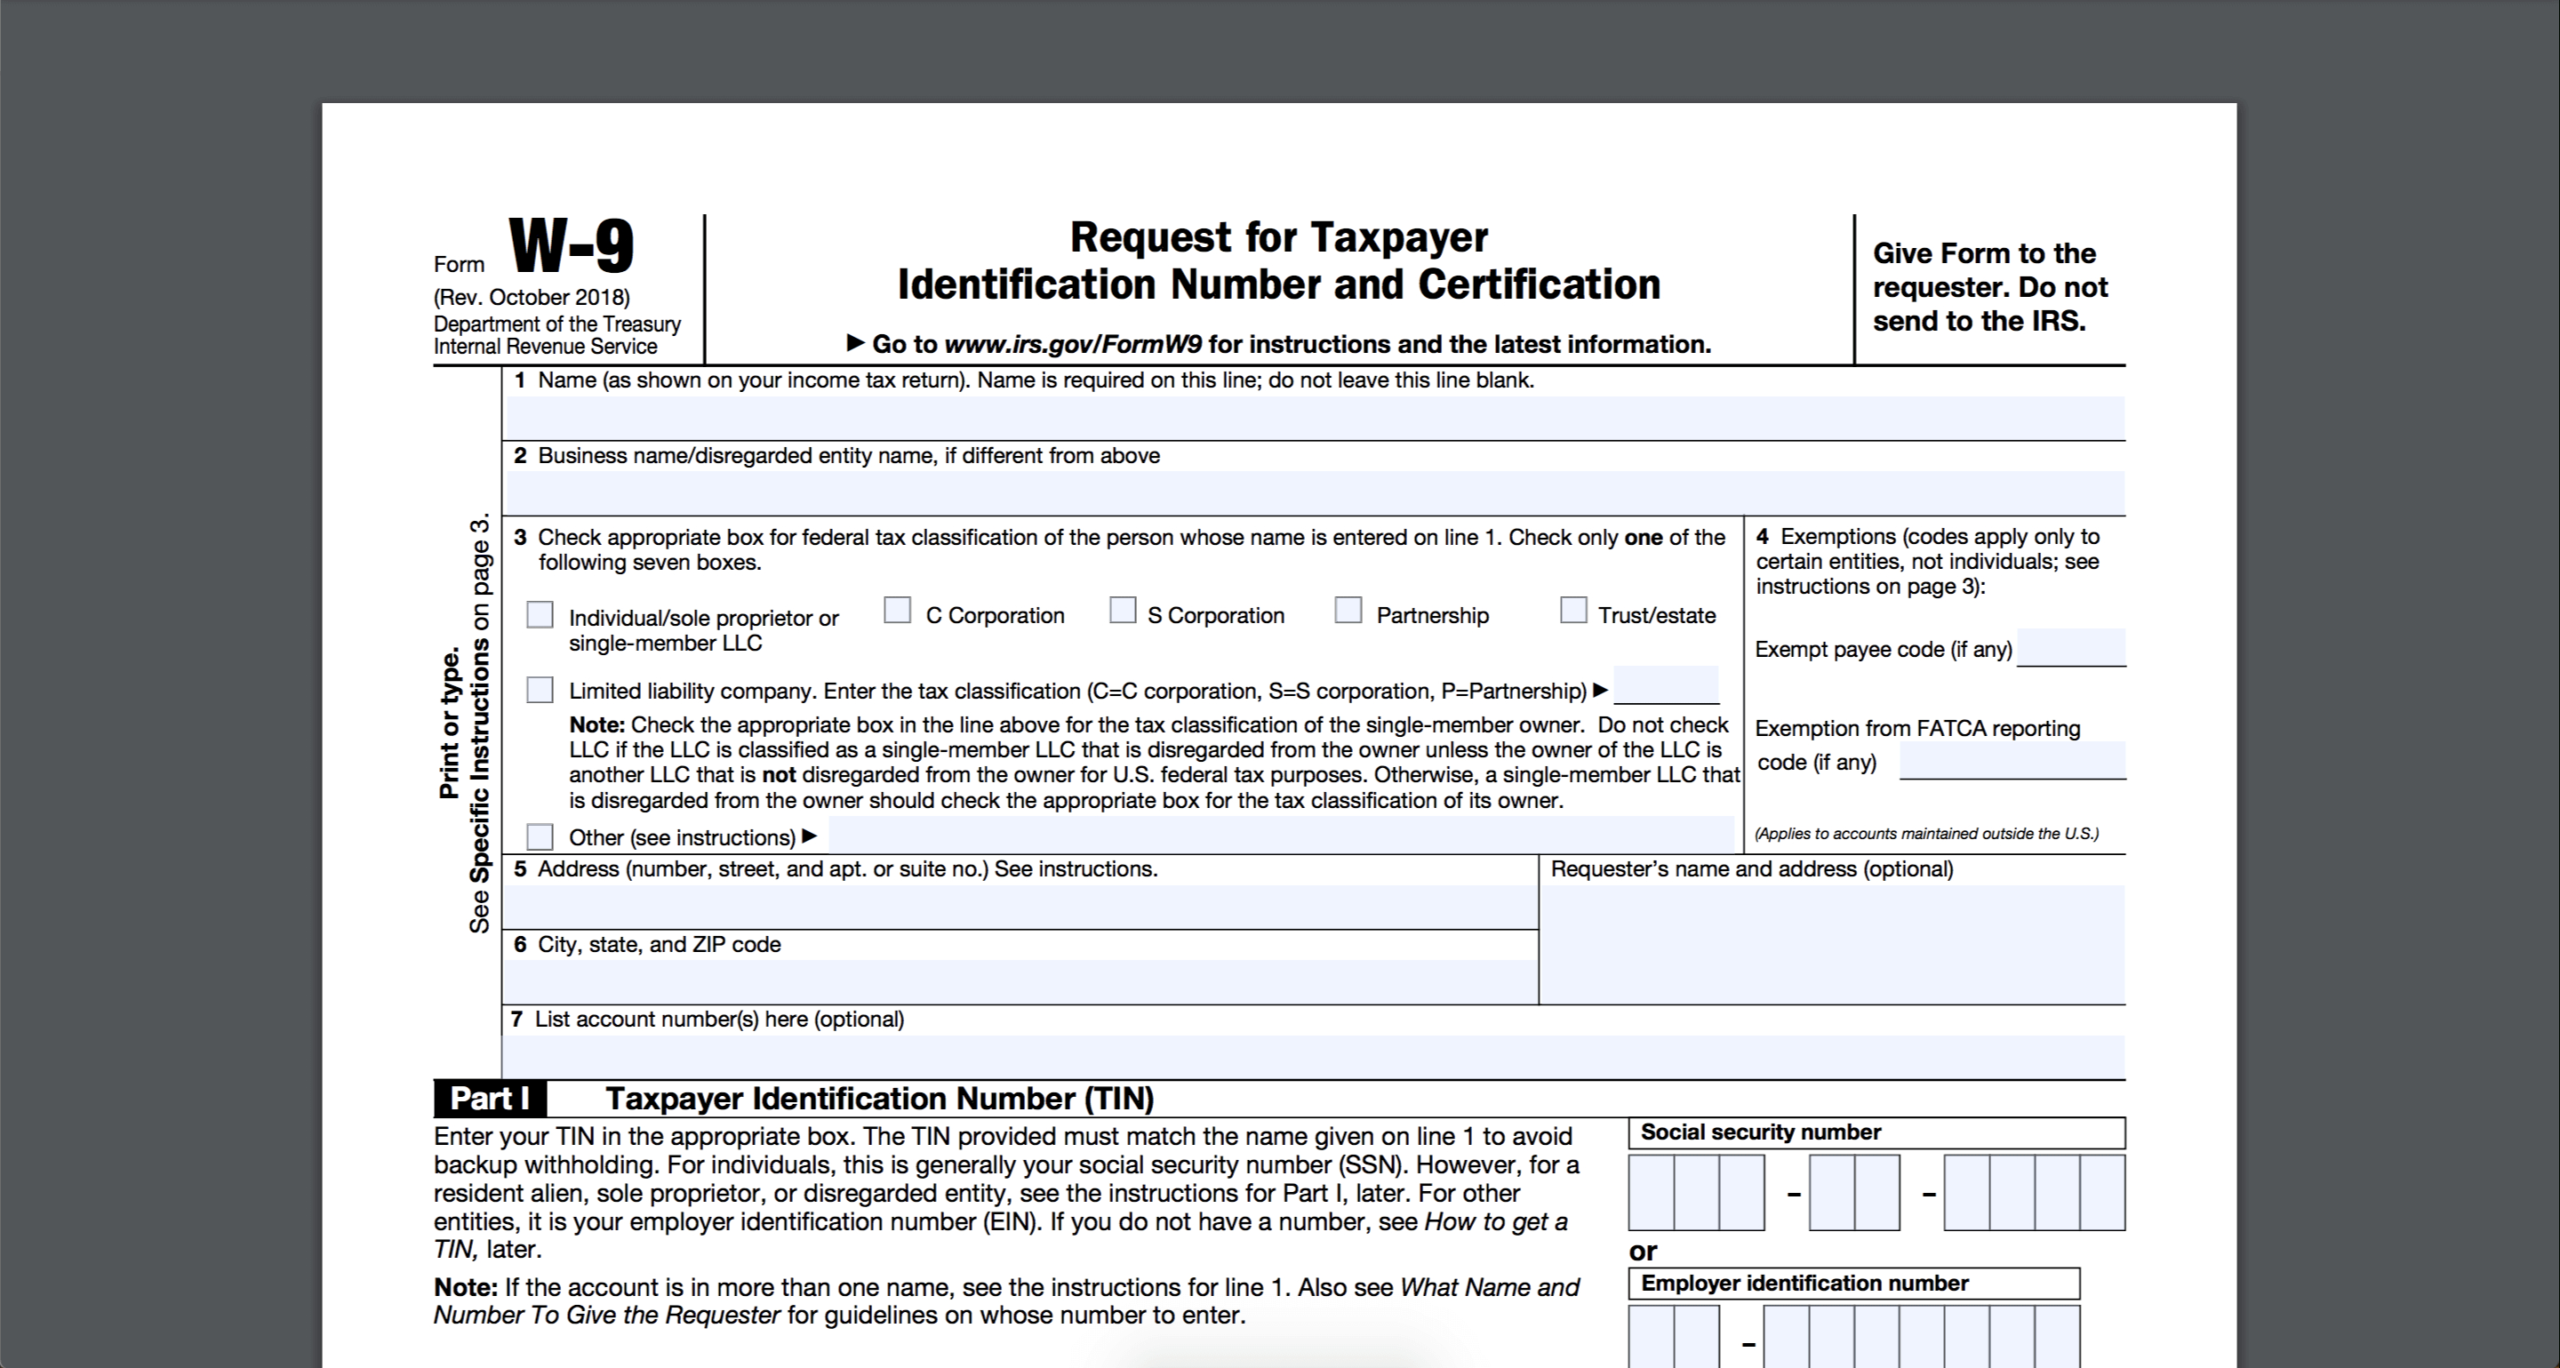 How To Fill Out And Sign Your W-9 Form Online inside Printable Irs W 9 Form